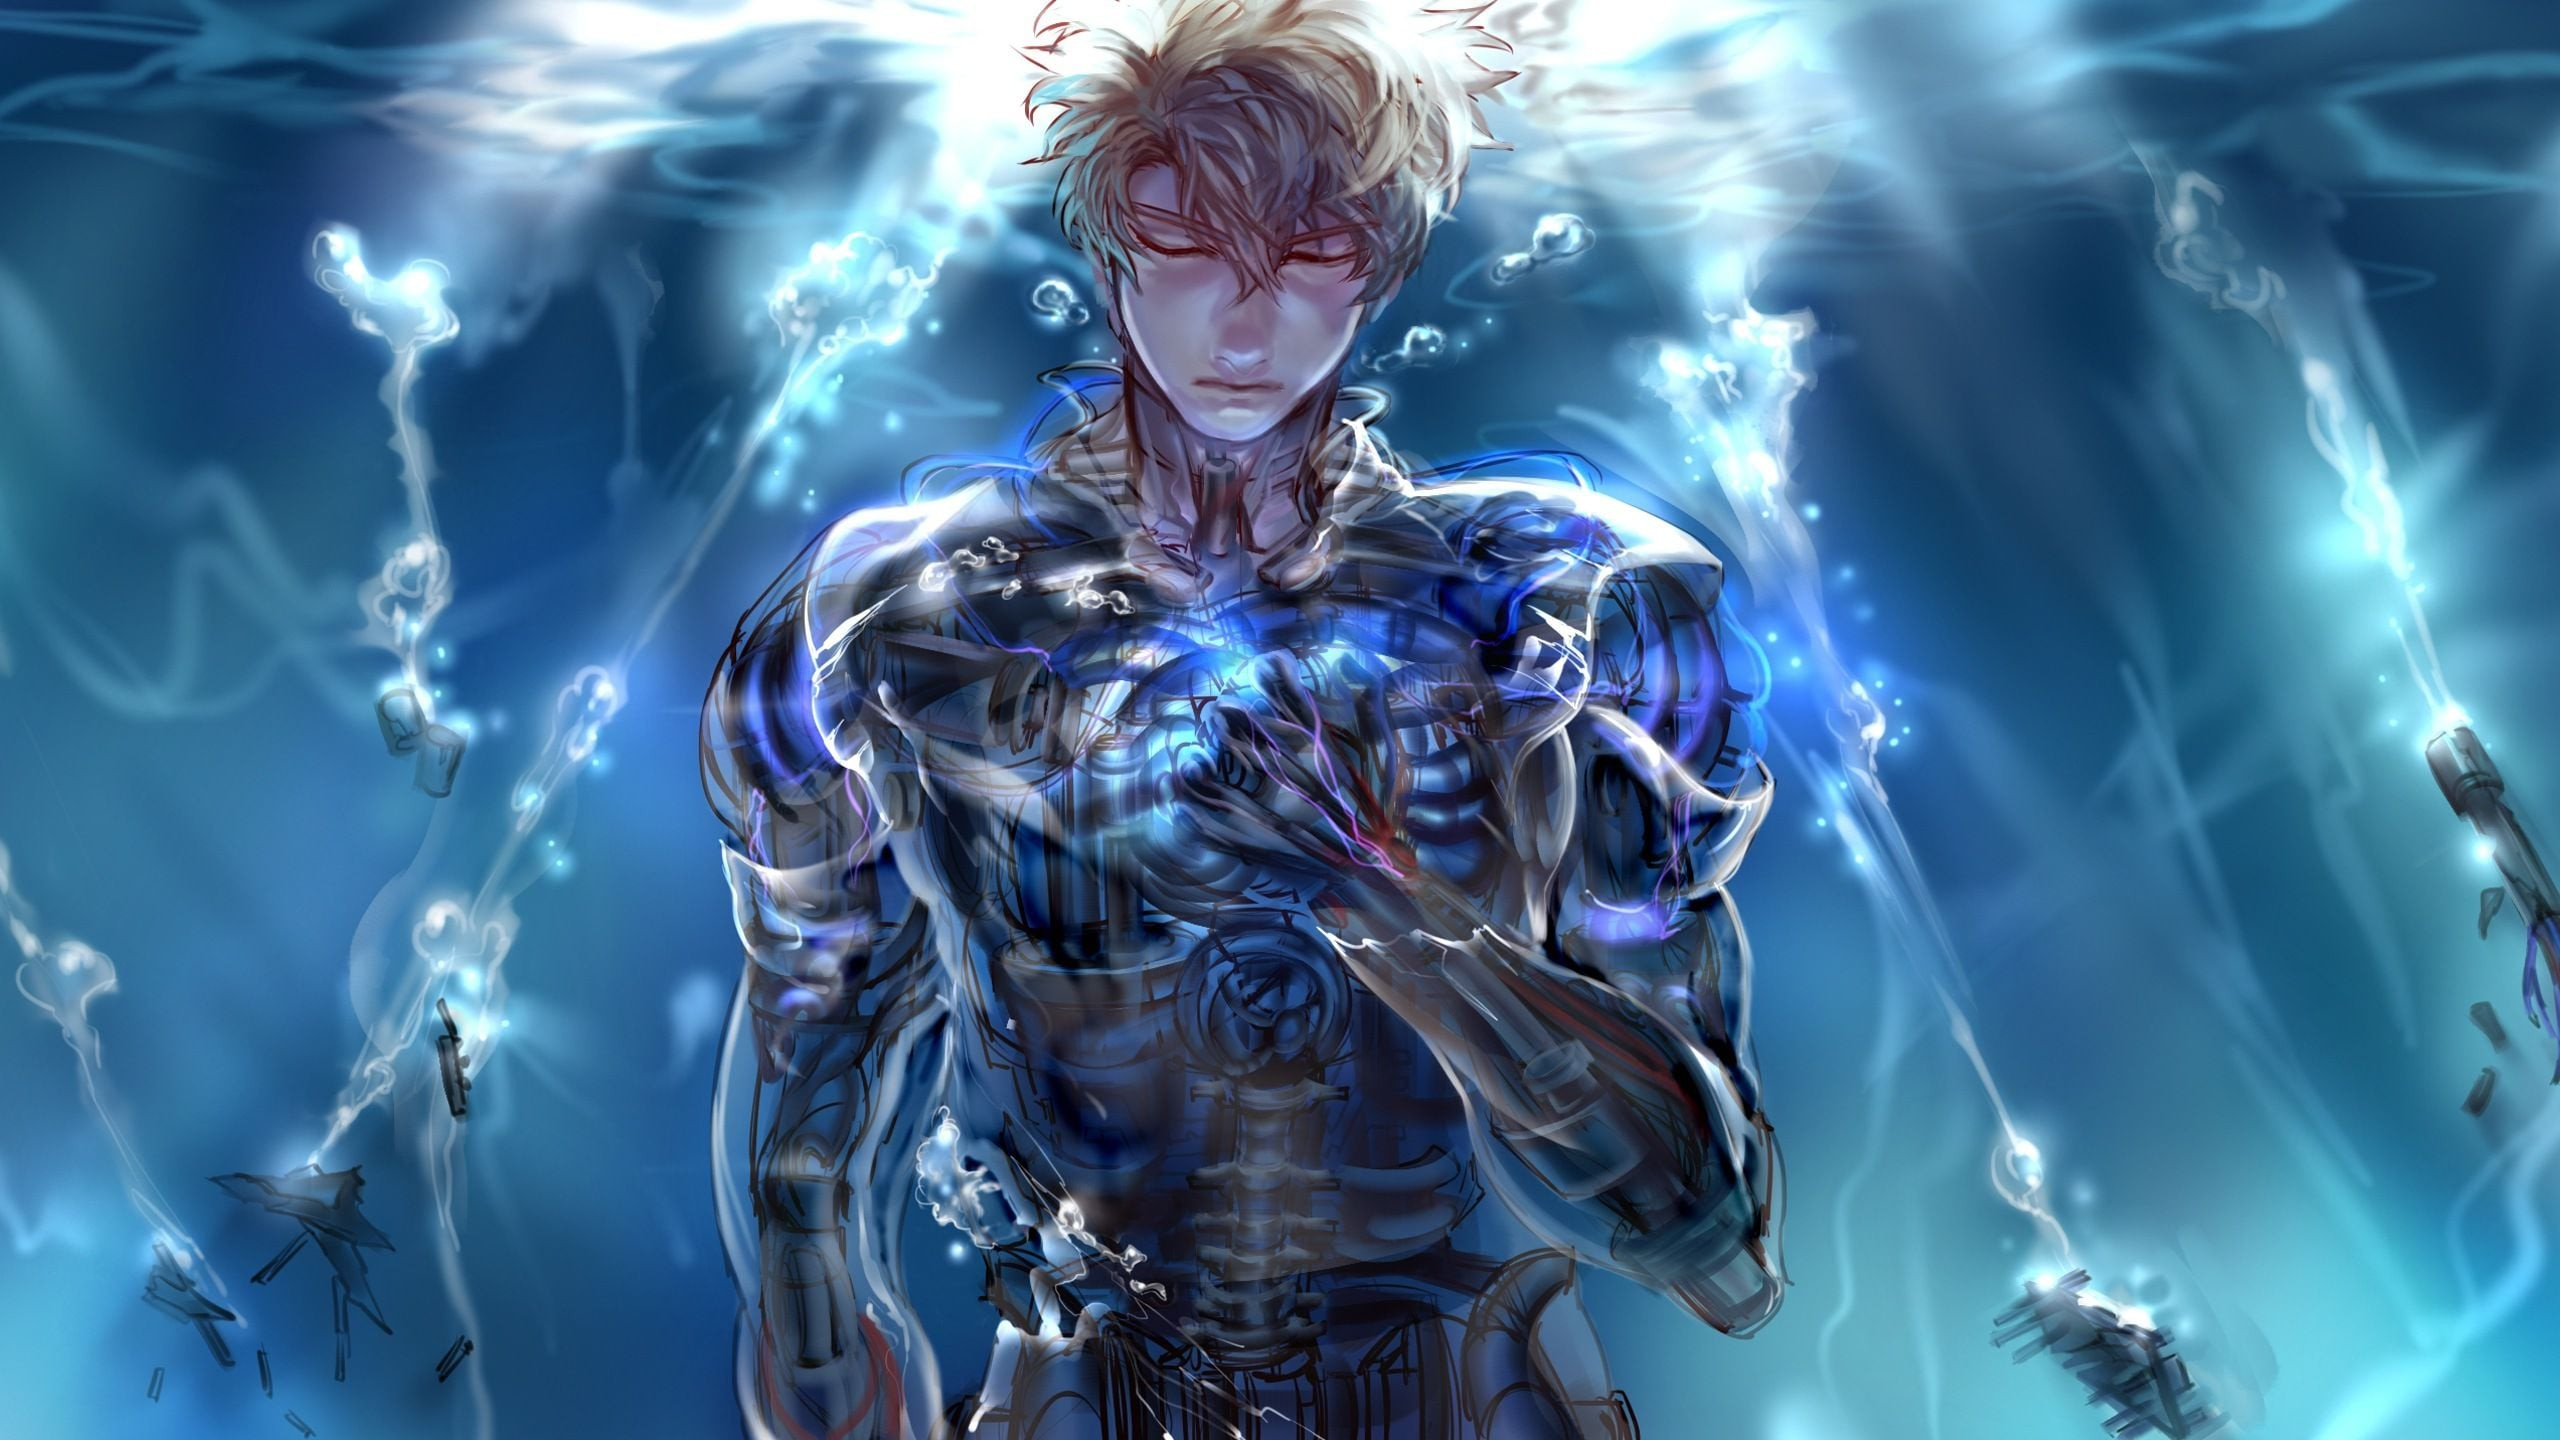 One Punch Man Genos wallpaper ·① Download free backgrounds ...